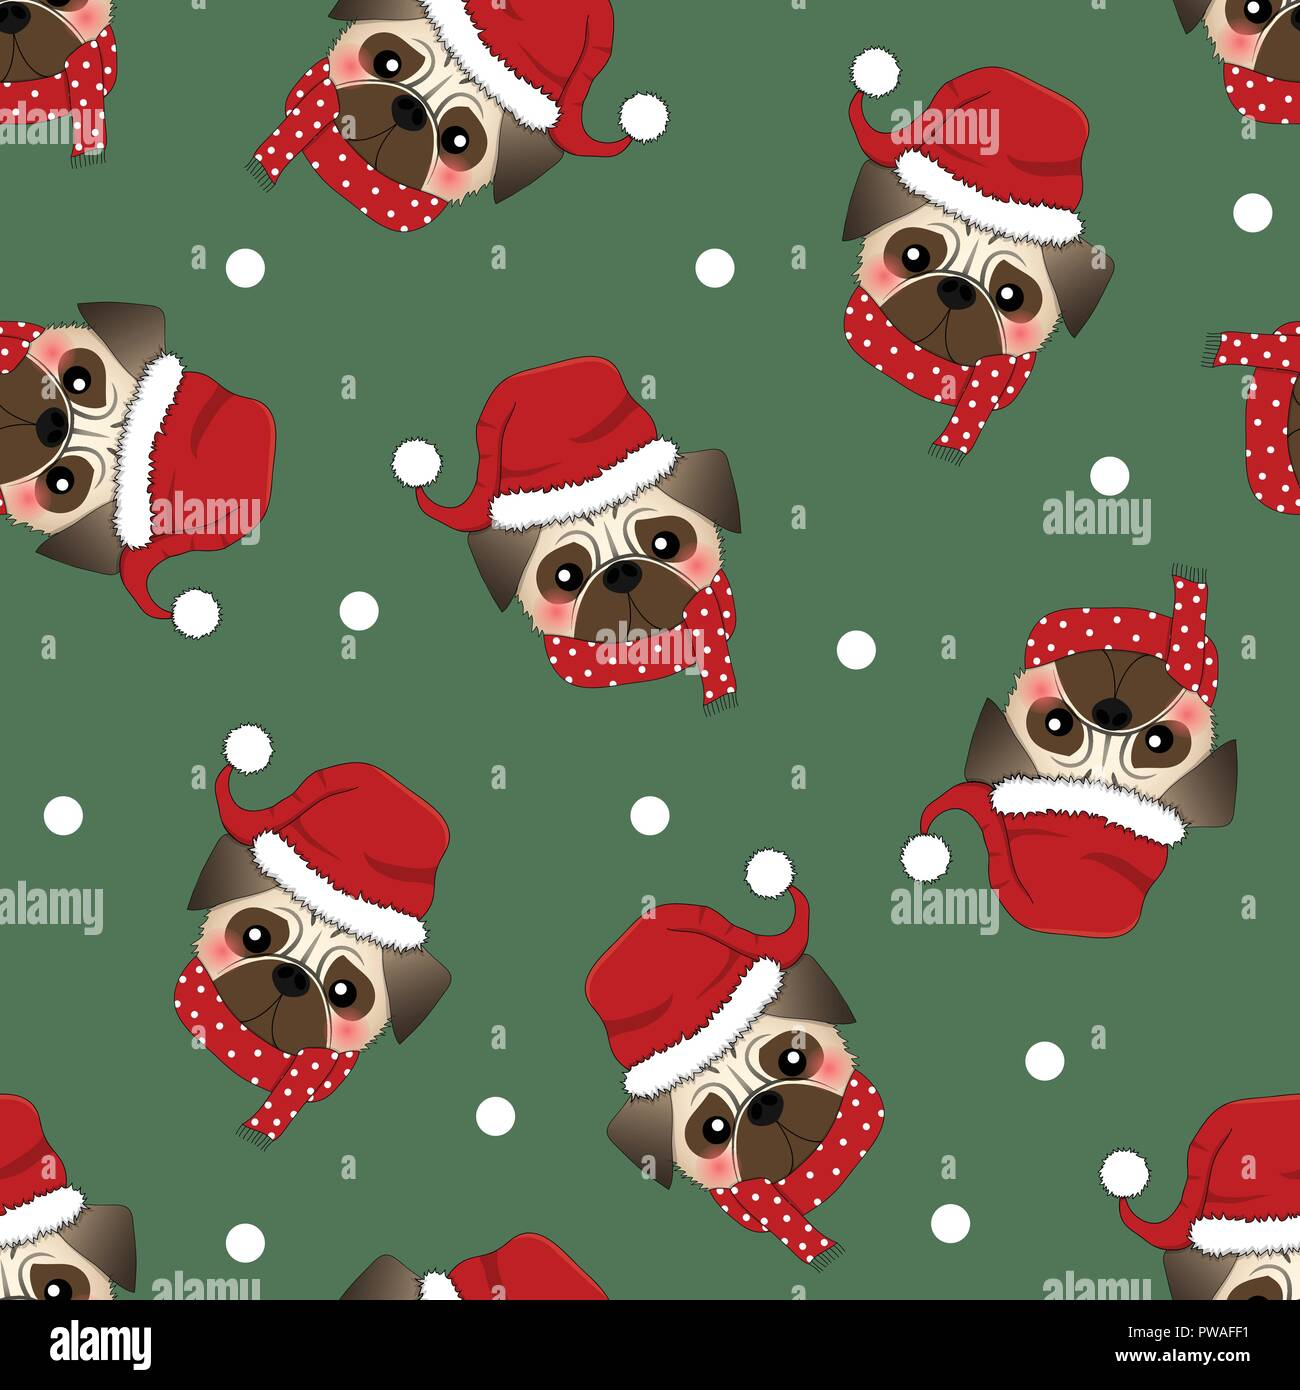 Pug Santa Claus Dog with Red Scarf on Green Background. Vector Illustration. - Stock Image